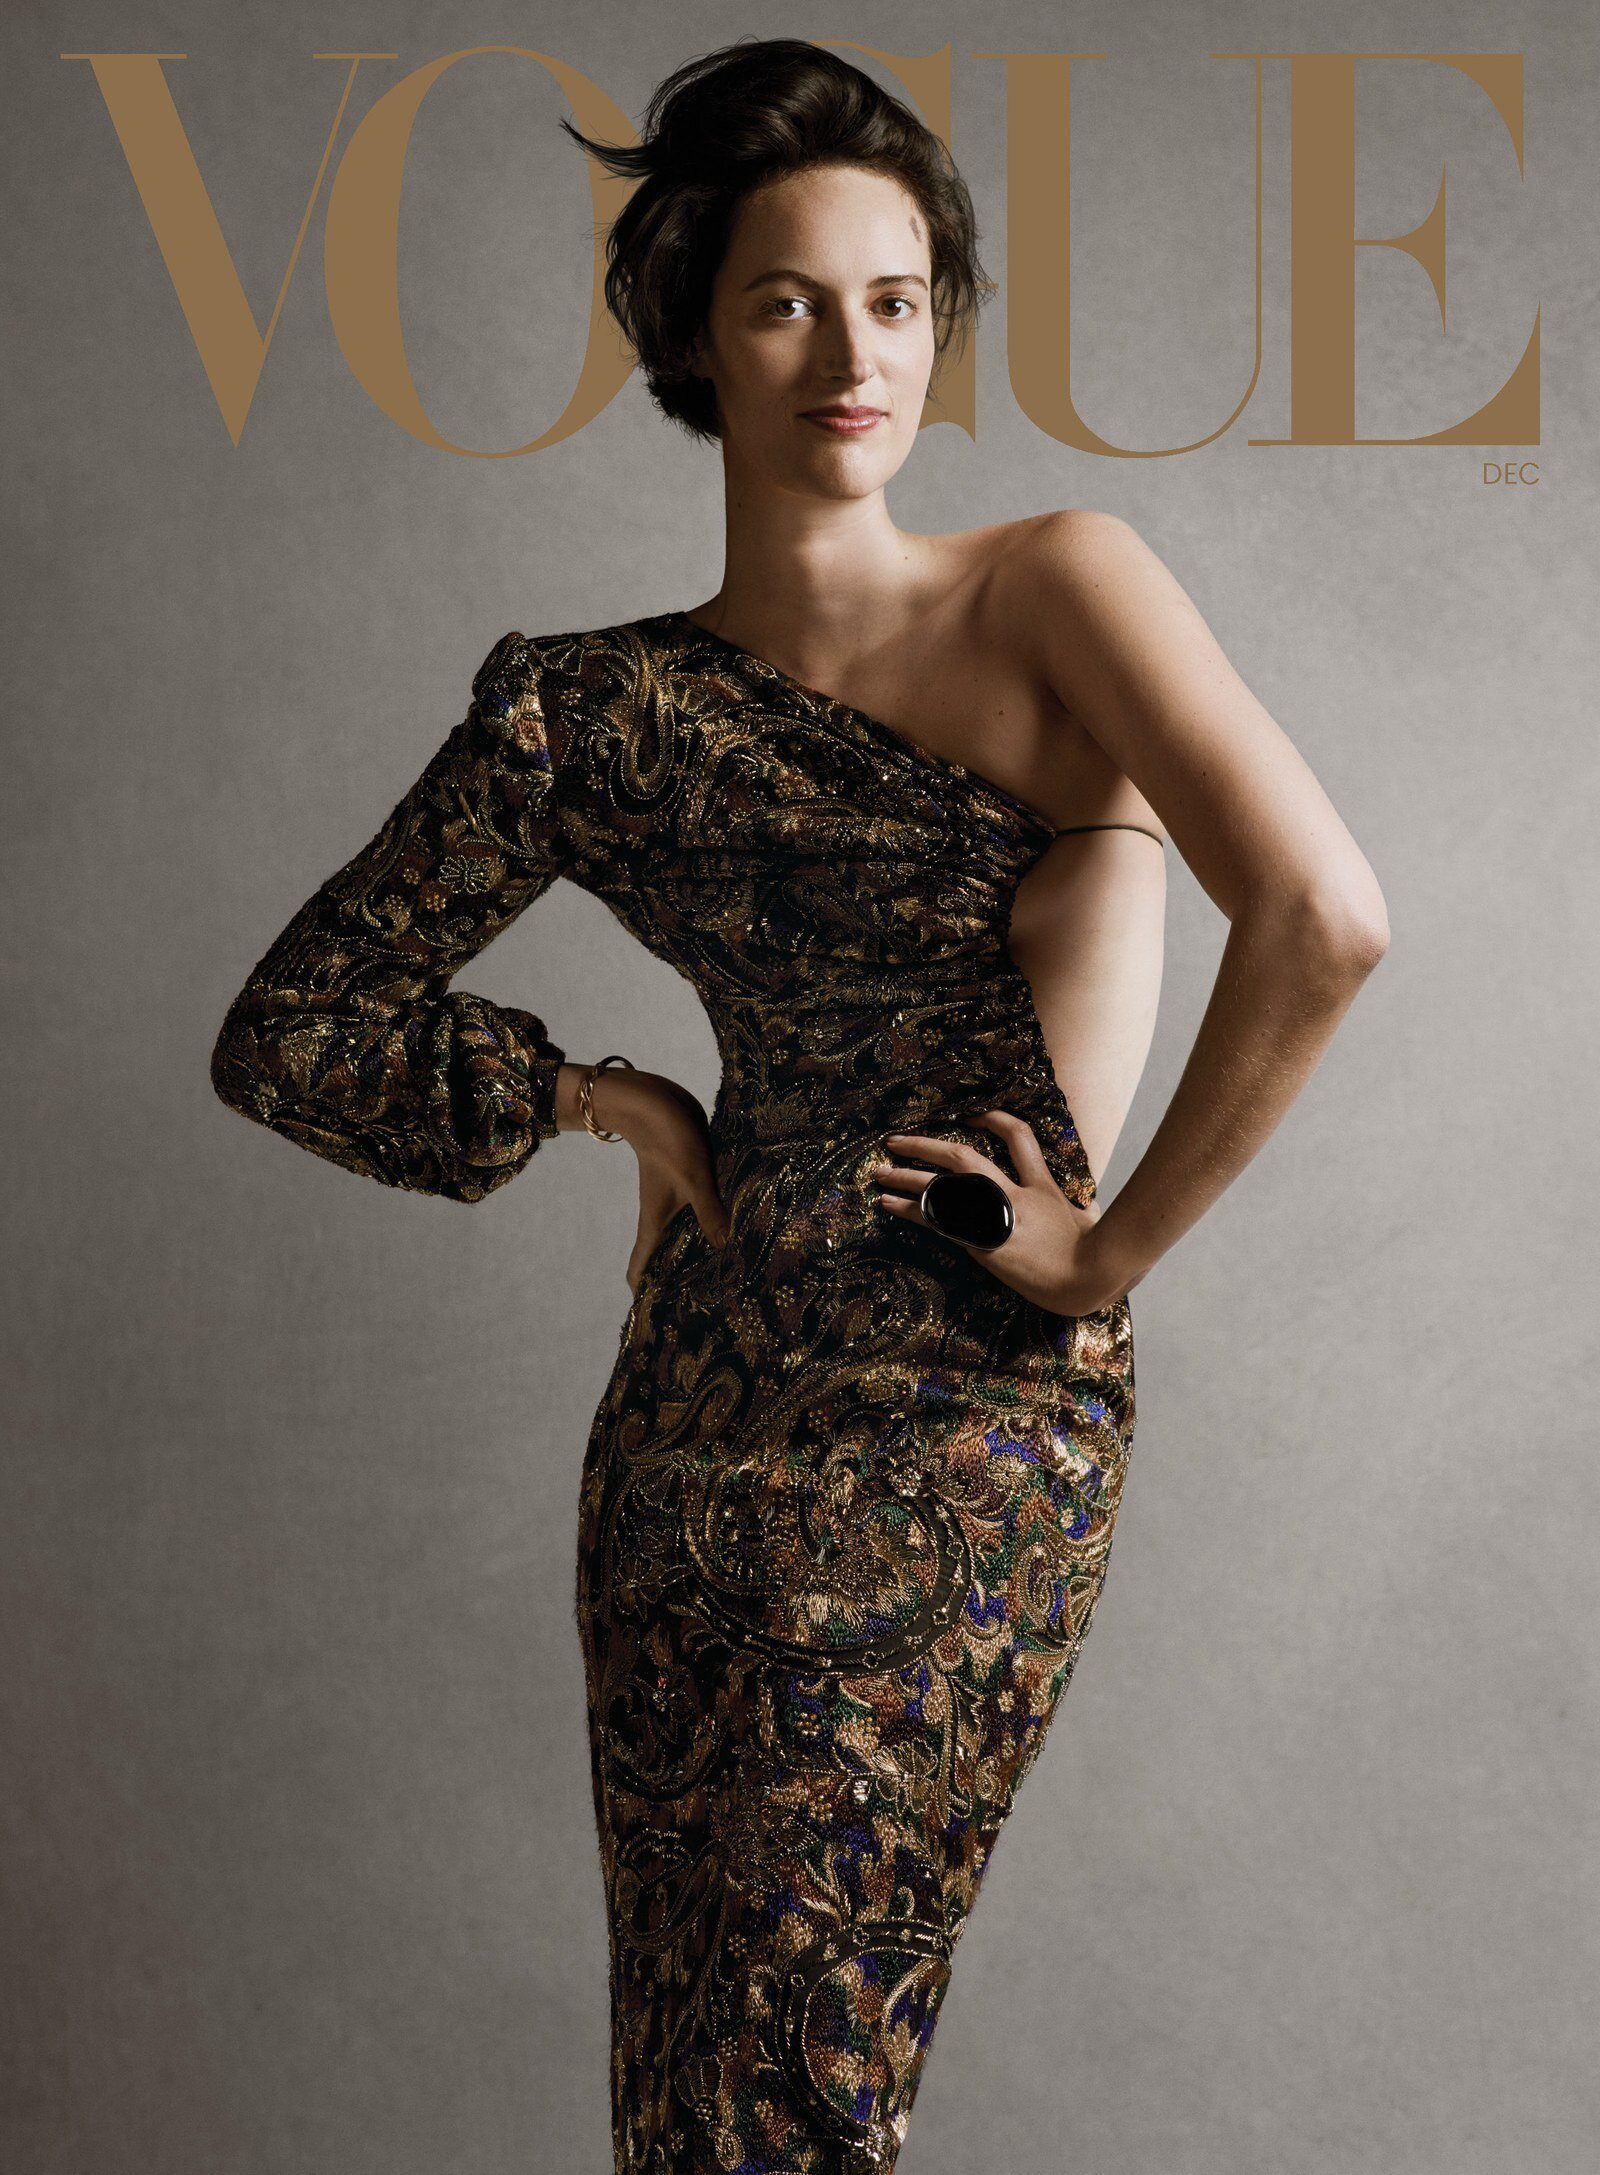 Phoebe Waller-Bridge by Ethan James Green for Vogue US December 2019 (5).jpg